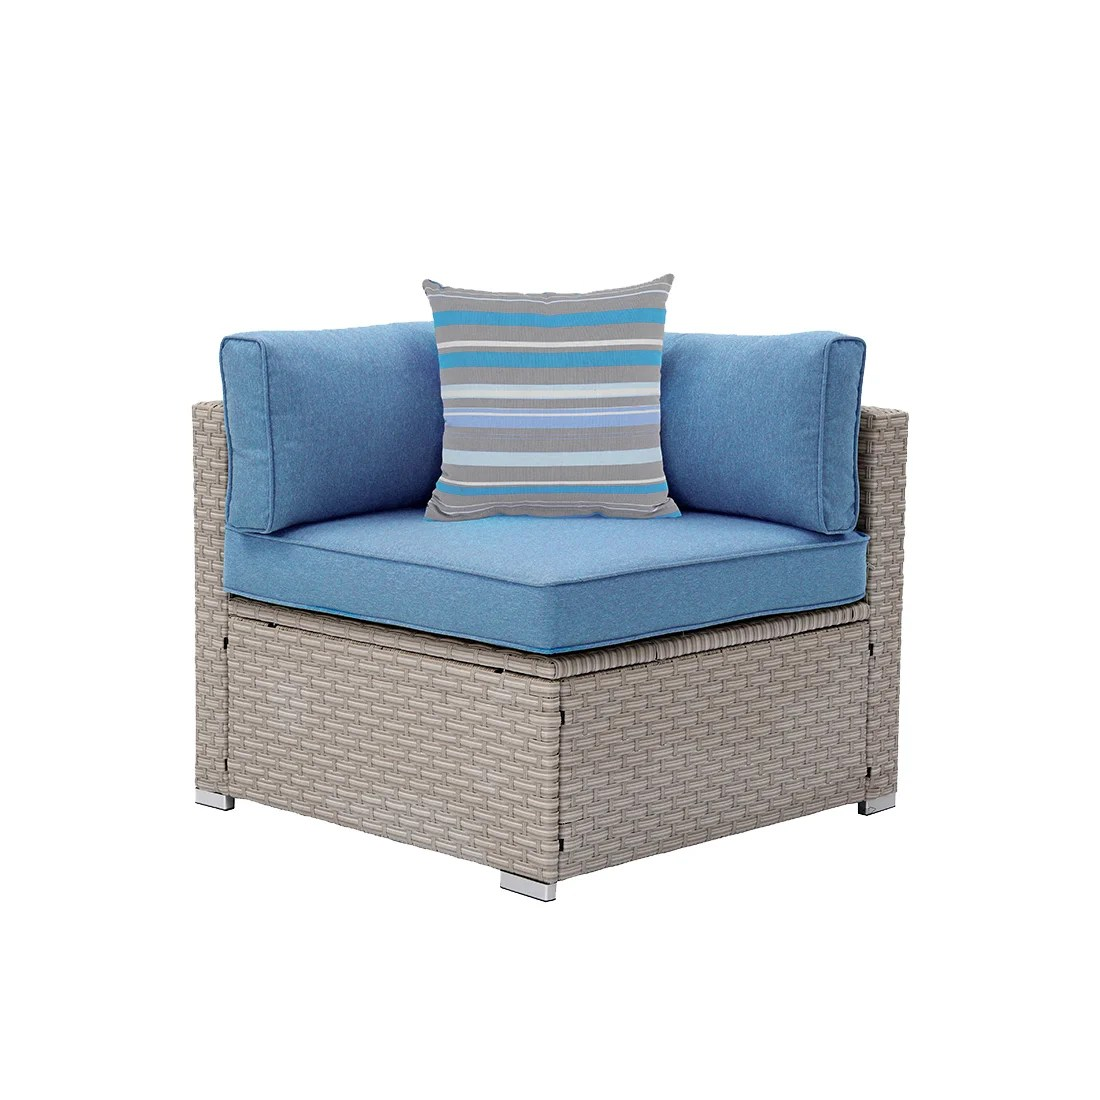 cosimo outdoor furniture right corner patio chair with cushions